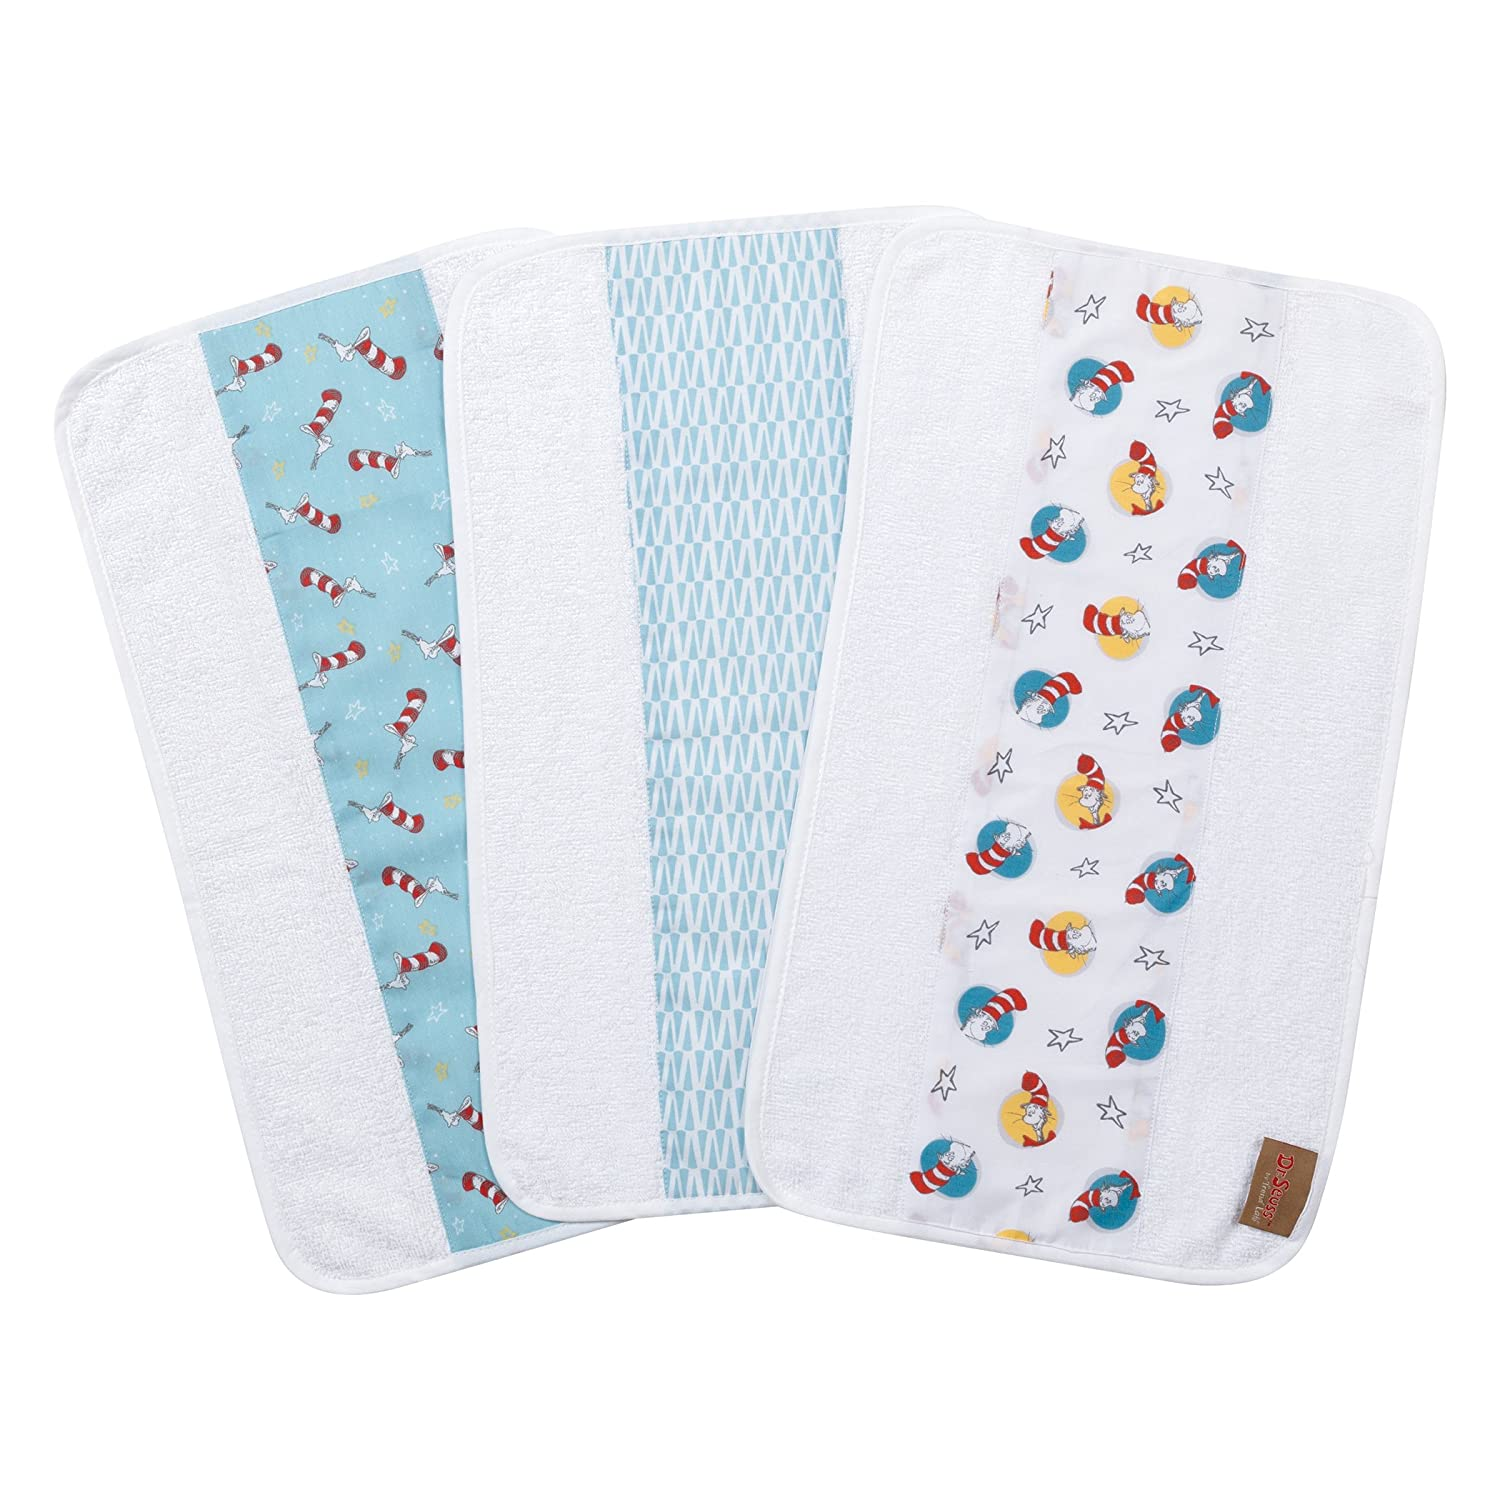 Trend Lab Dr. Seuss by Cat in The Hat 3 Pack Jumbo Burp Cloth Set, Red/Blue/Yellow/Gray/White 30536